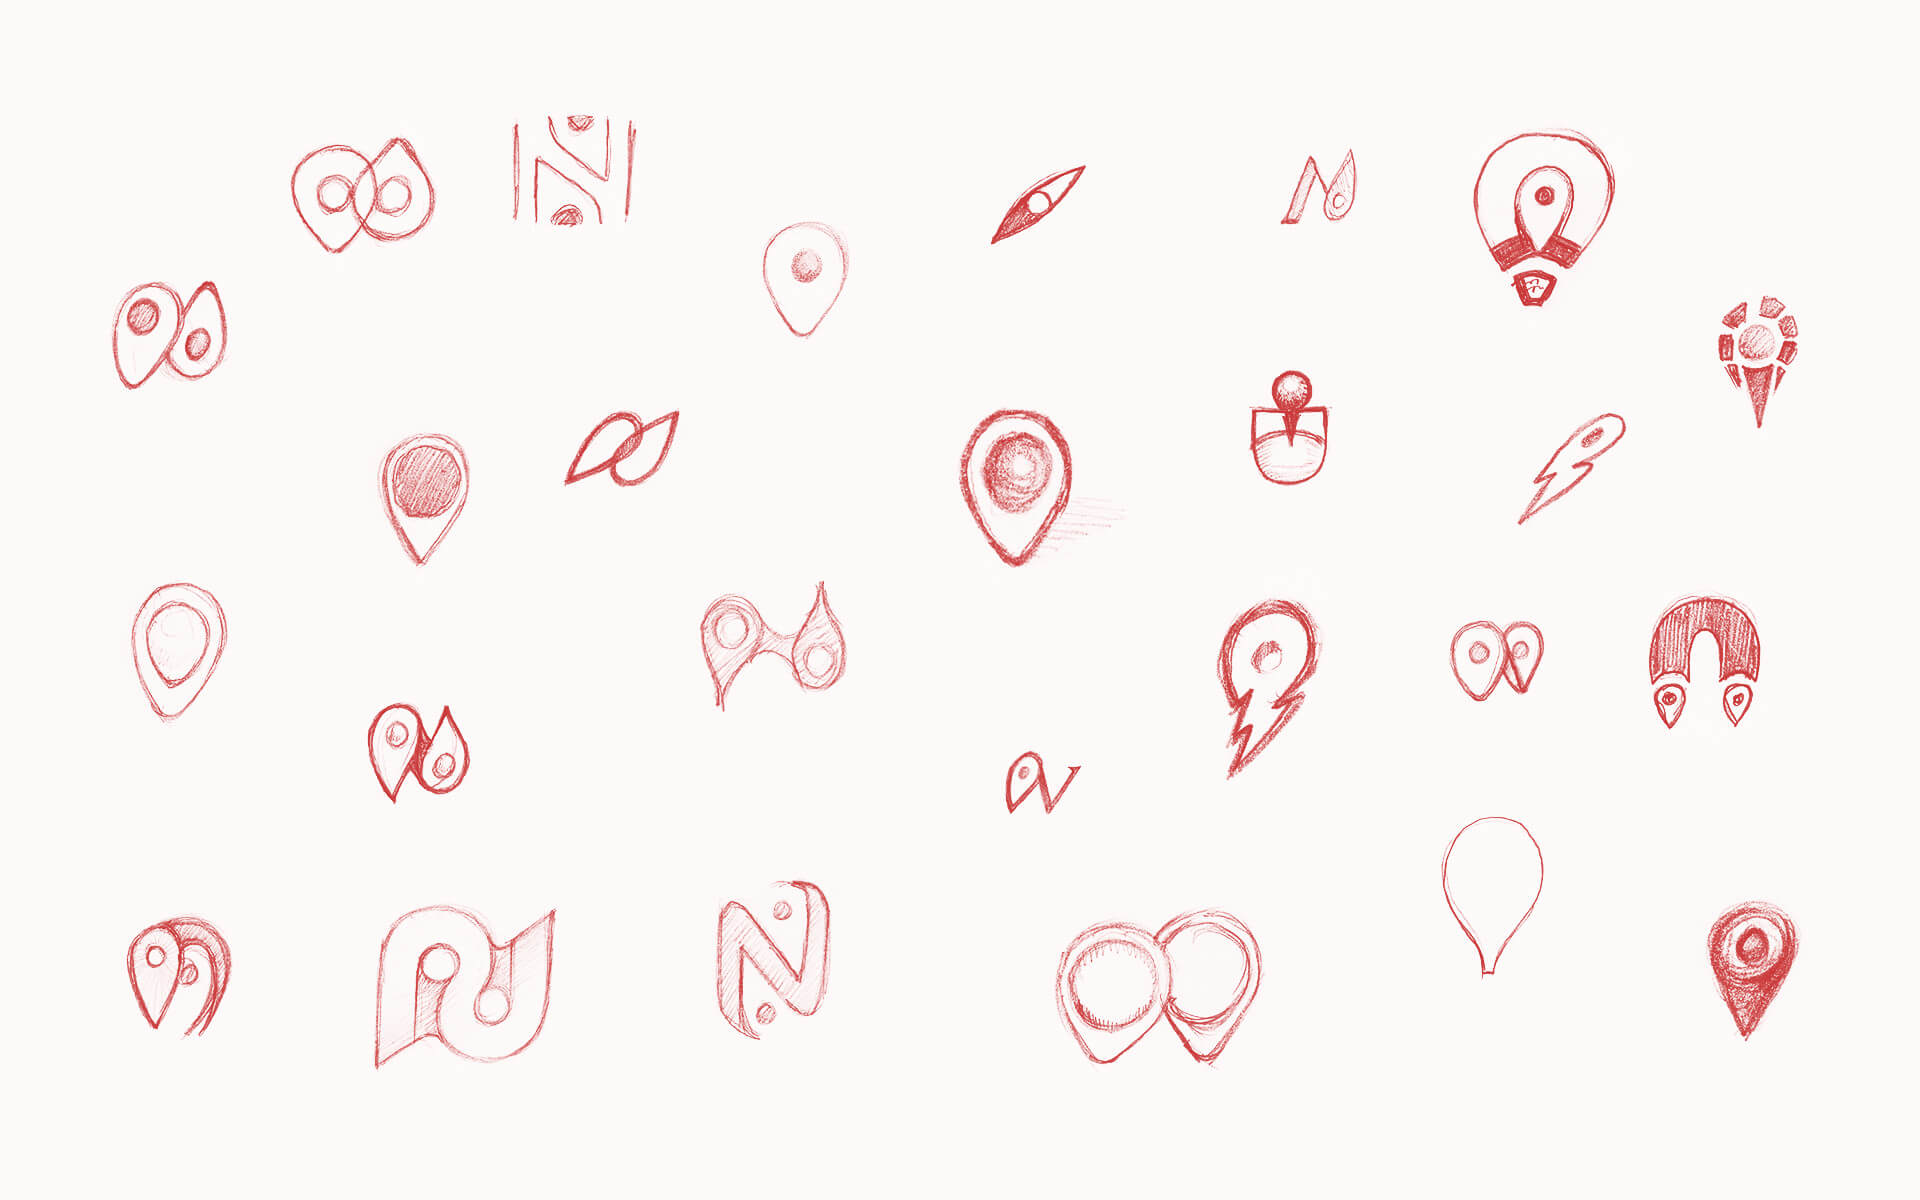 01 nearbuy_initial sketches